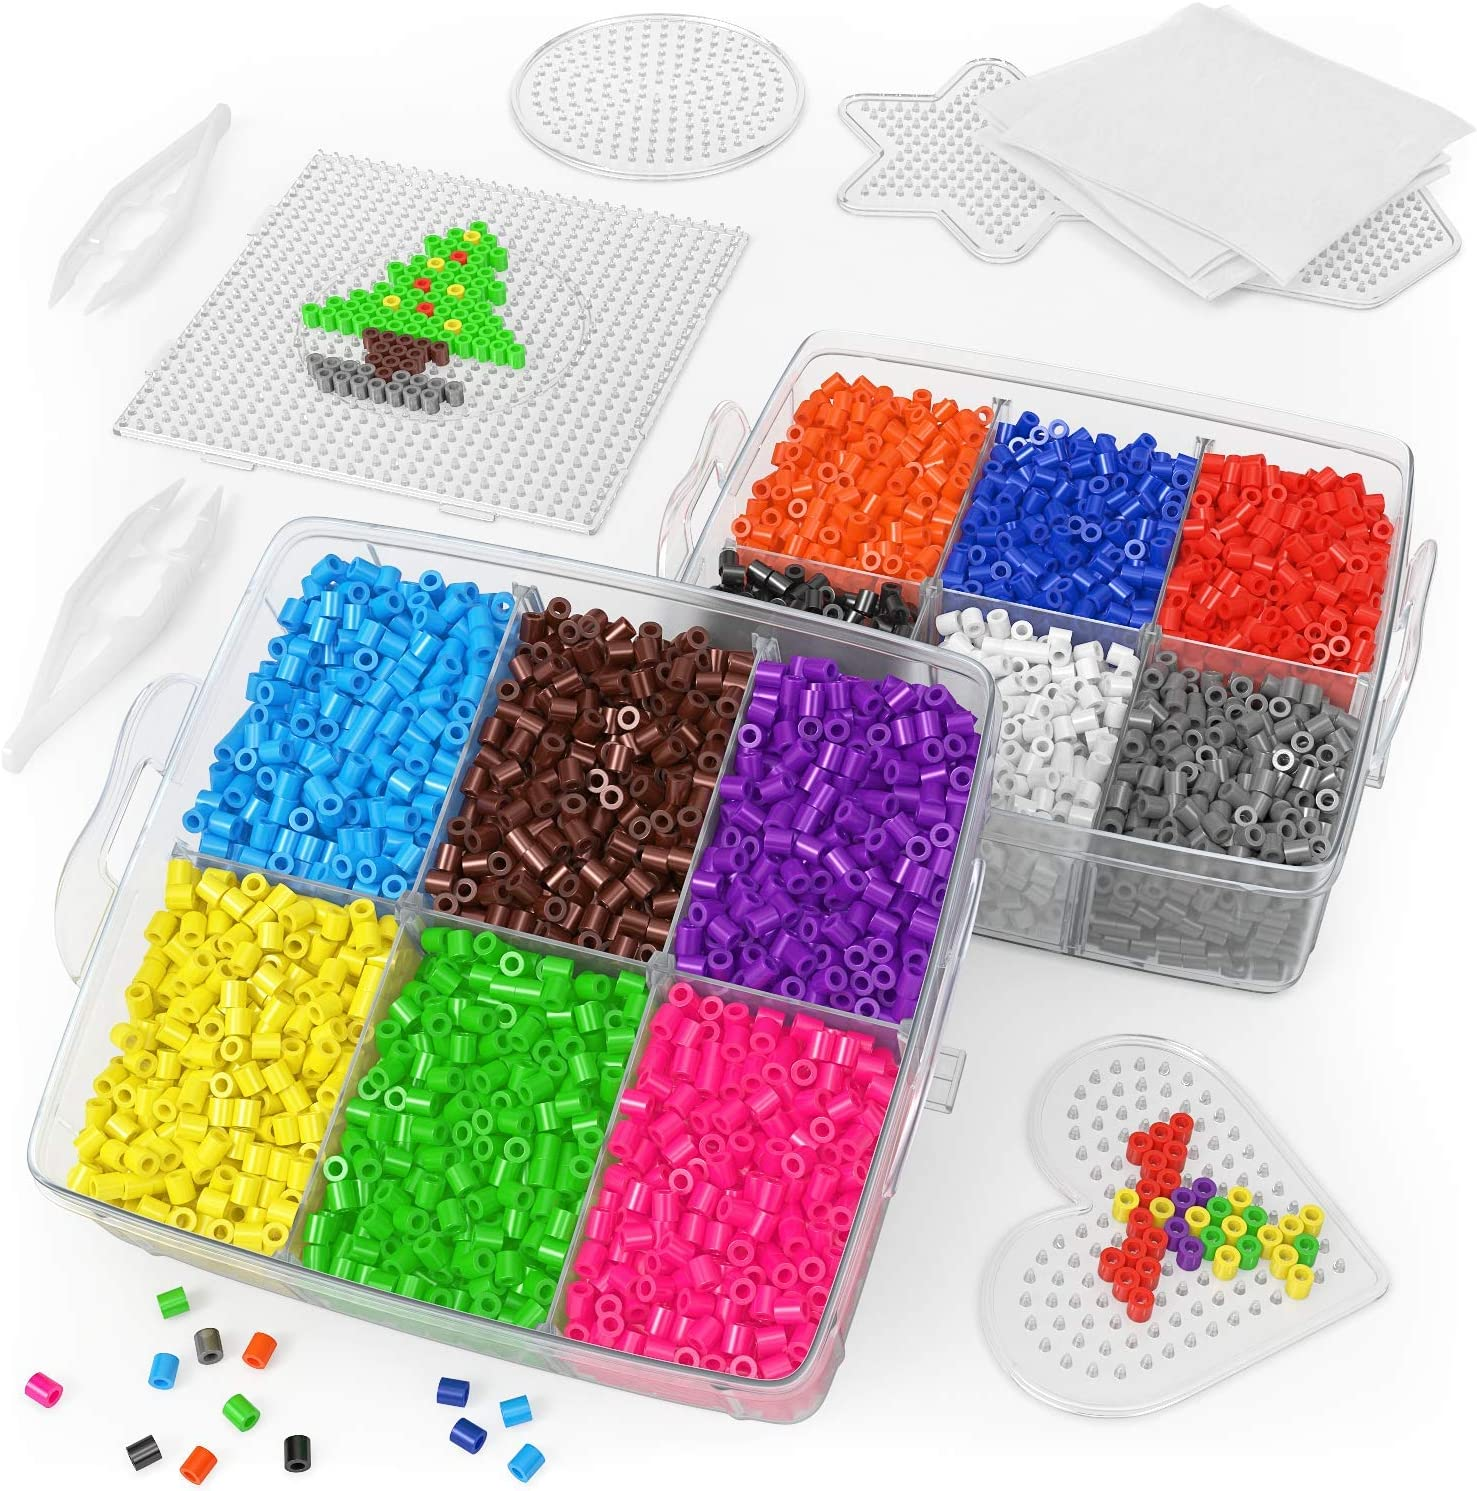 Fuse Beads Kit with 5 Pegboards 5mm 12 Colors 10,000 Beads 2 Tweezers /& 5 Ironing Papers in a 3-Tier Container for Making DIY Crafts ARTEZA Iron Beads for Kids